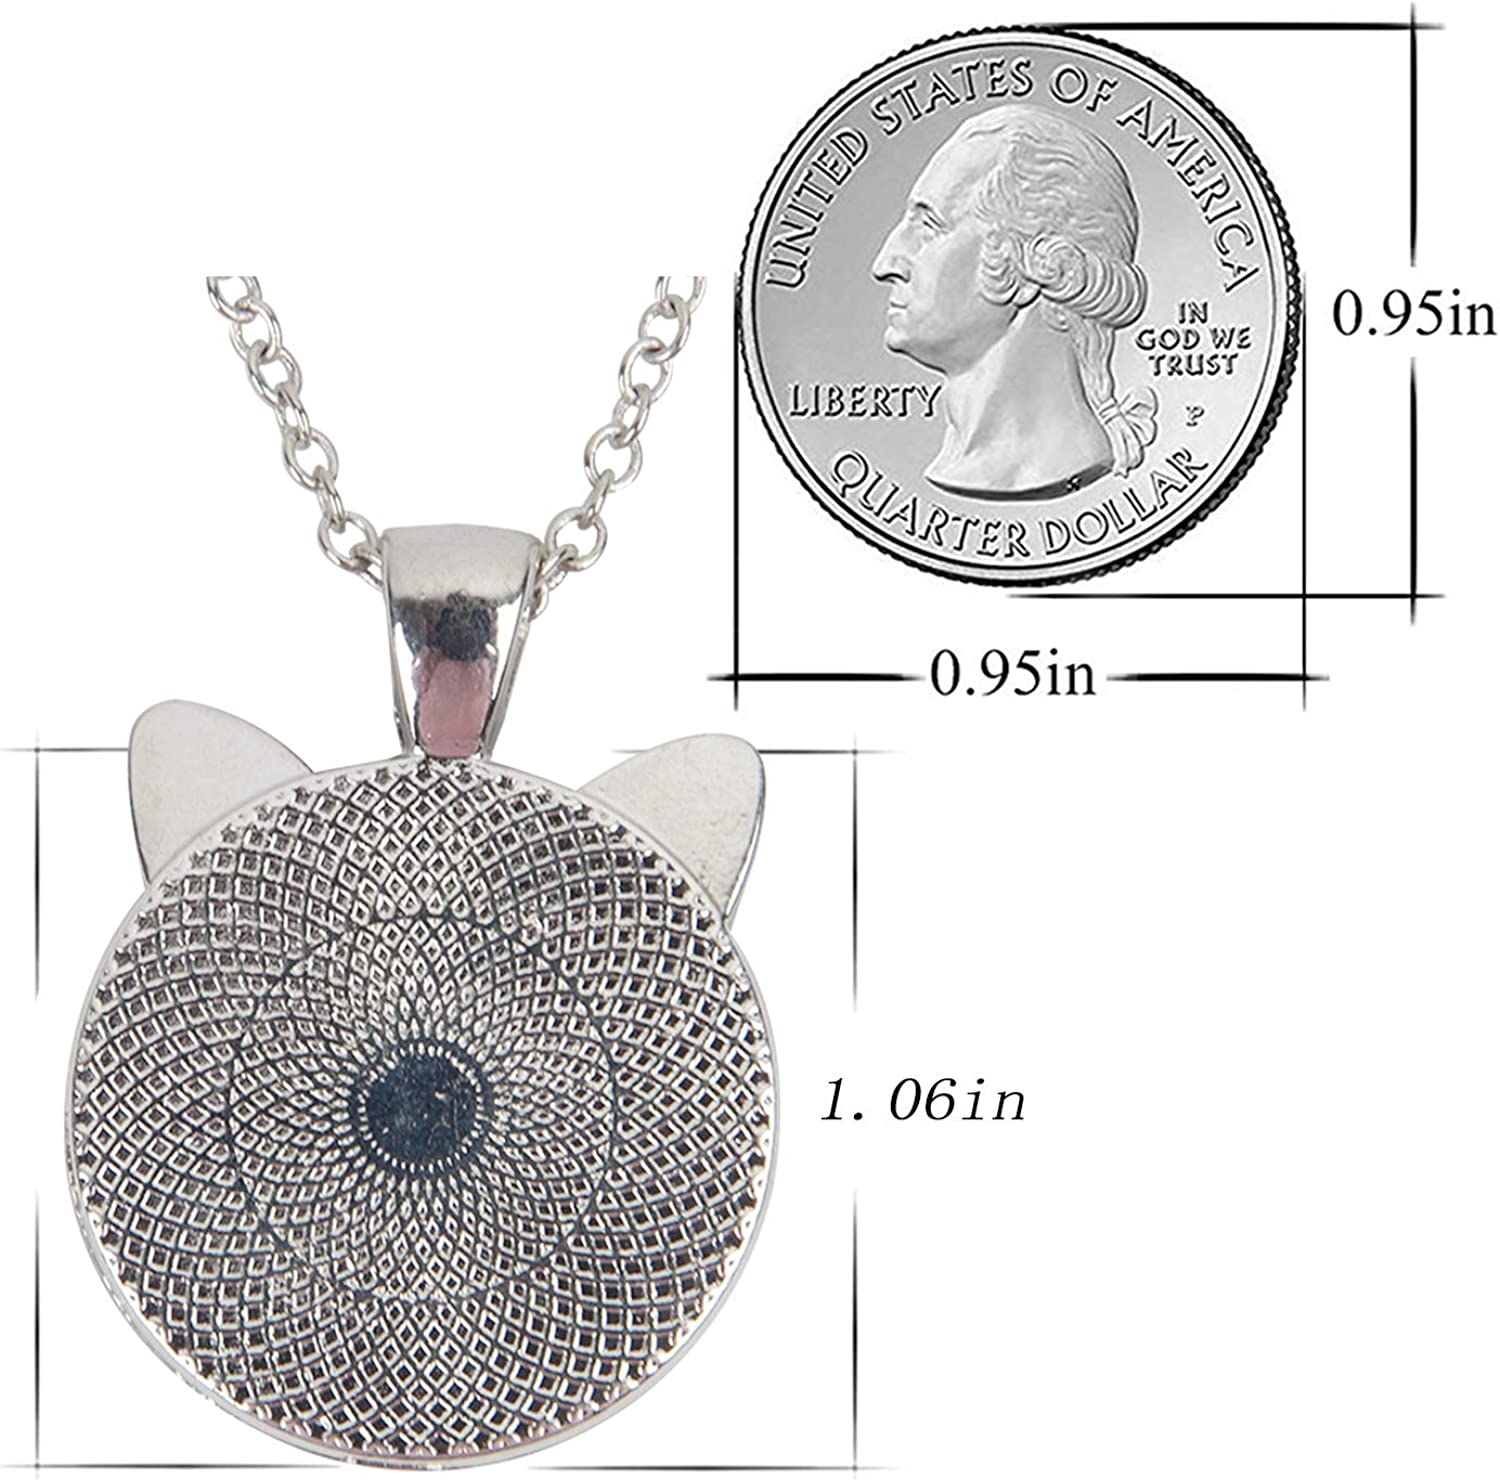 LooPoP Cat Pendant Necklace Jewelry for Women Kids Gifts Included Free Charm Chain Steampunk Owl